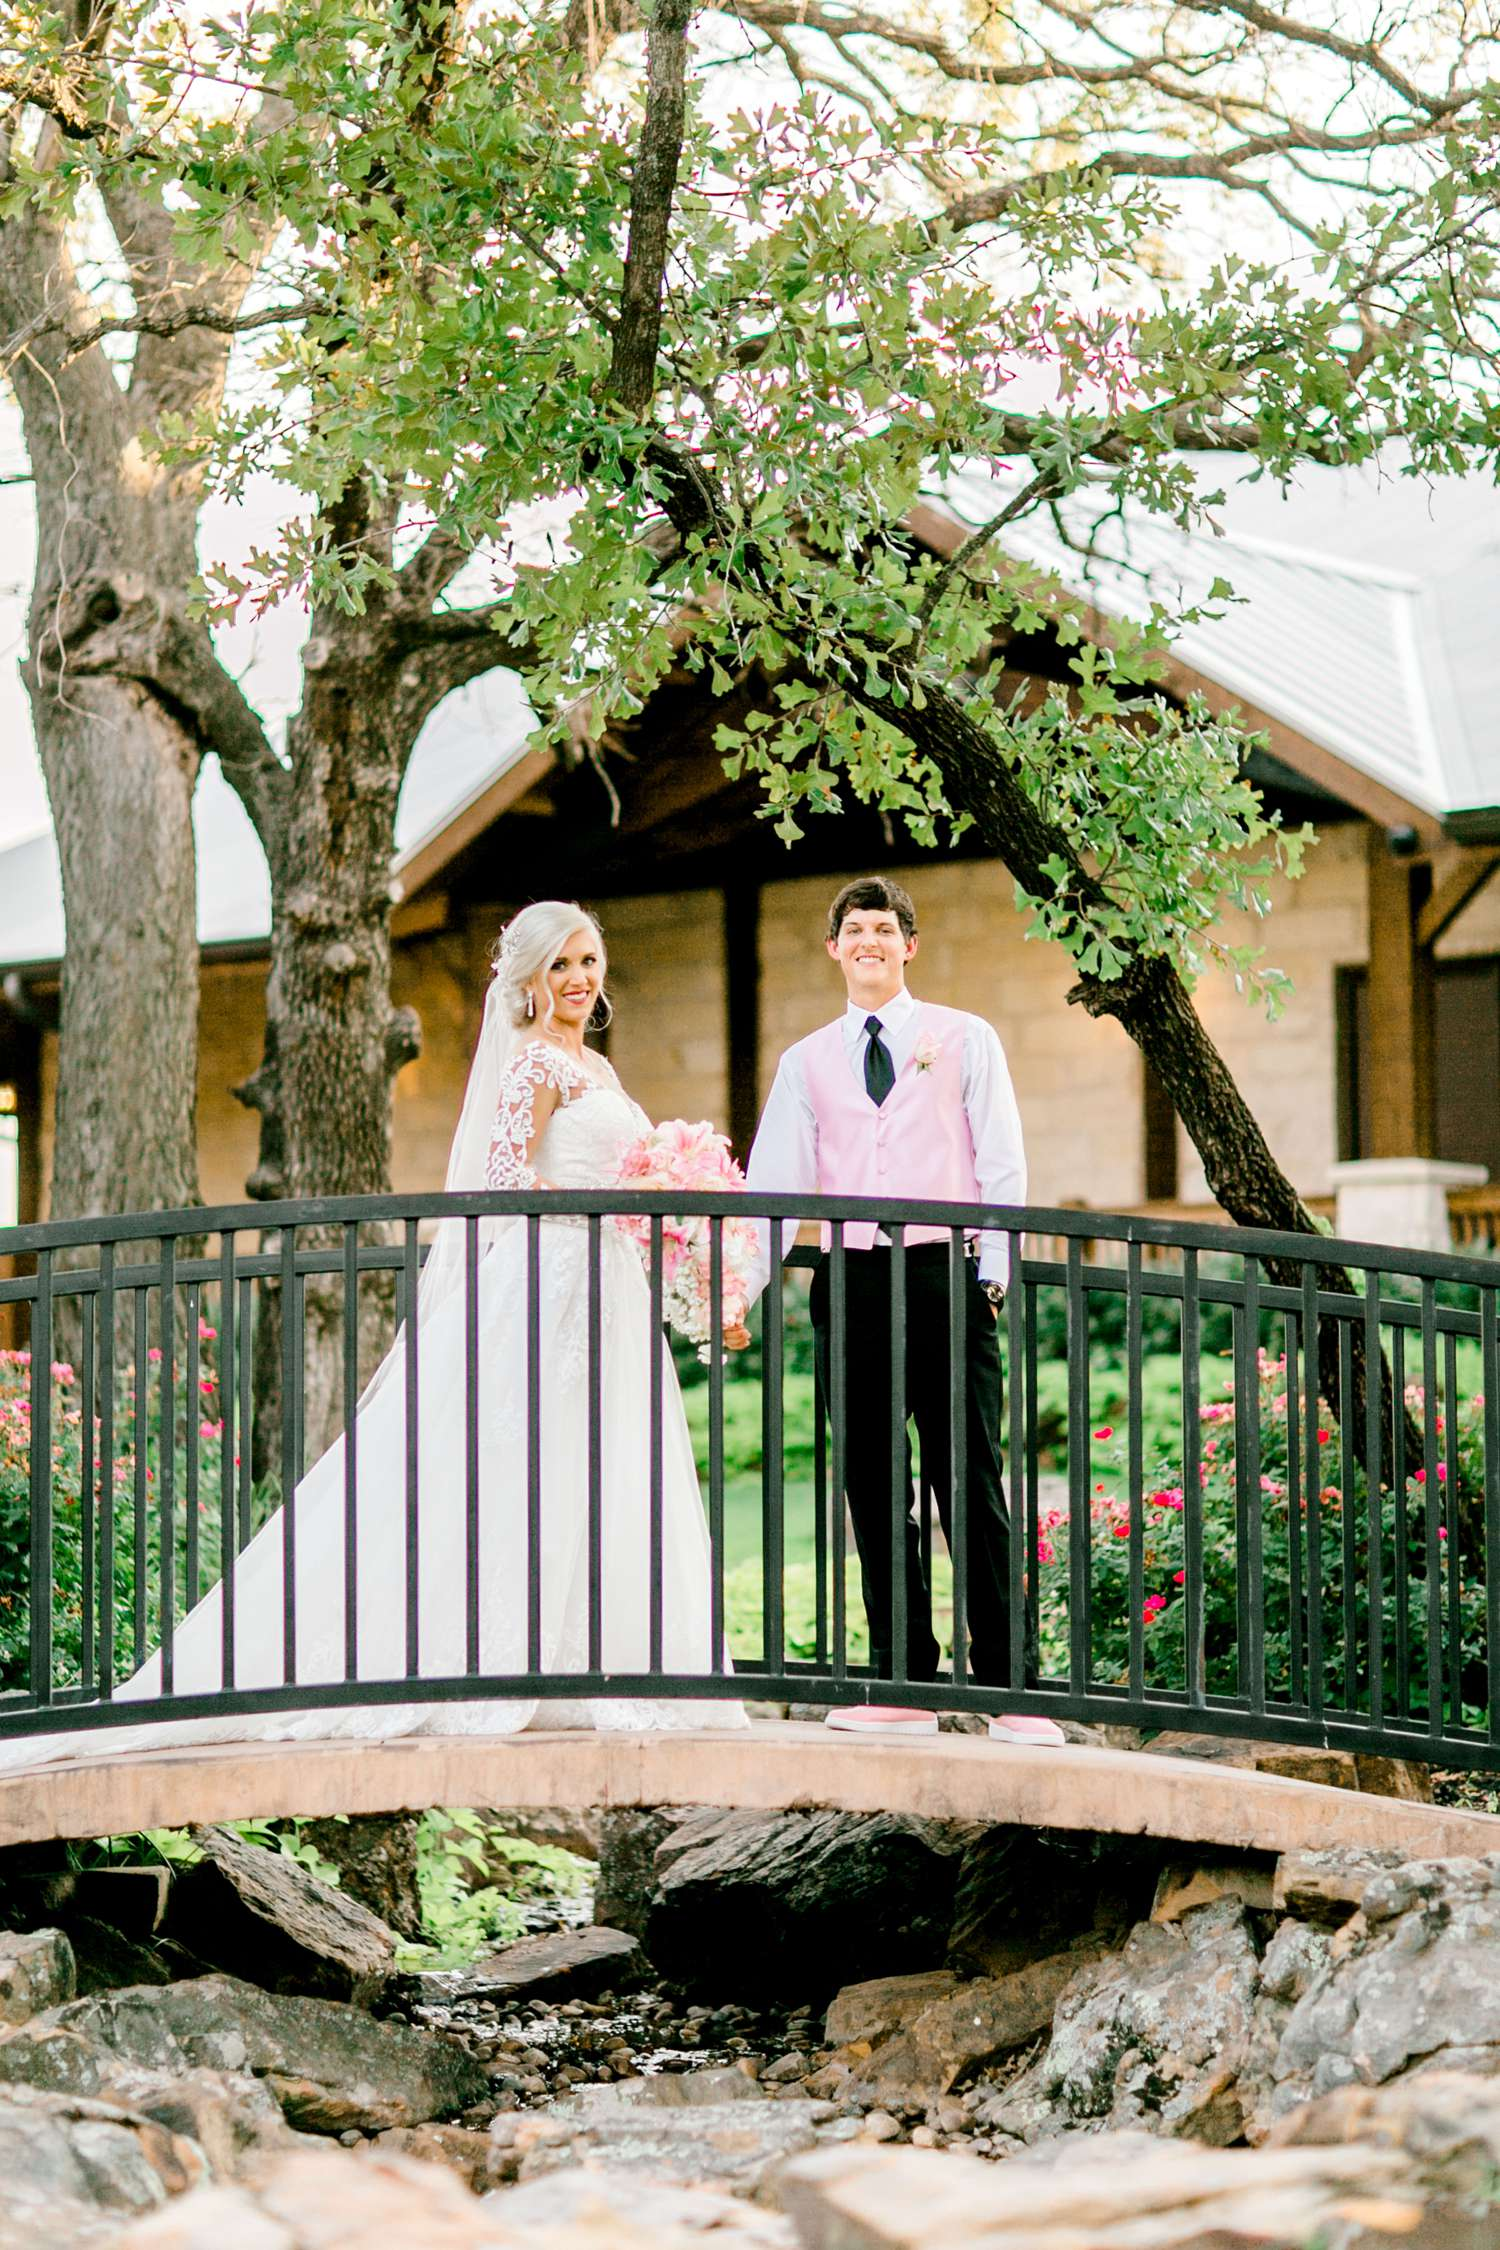 JESSICA+LYLE+NEEL+THE_SPRINGS_EVENTS_WEDDING_OKLAHOMA_ALLEEJ_PHOTOGRAPHER_0099.jpg